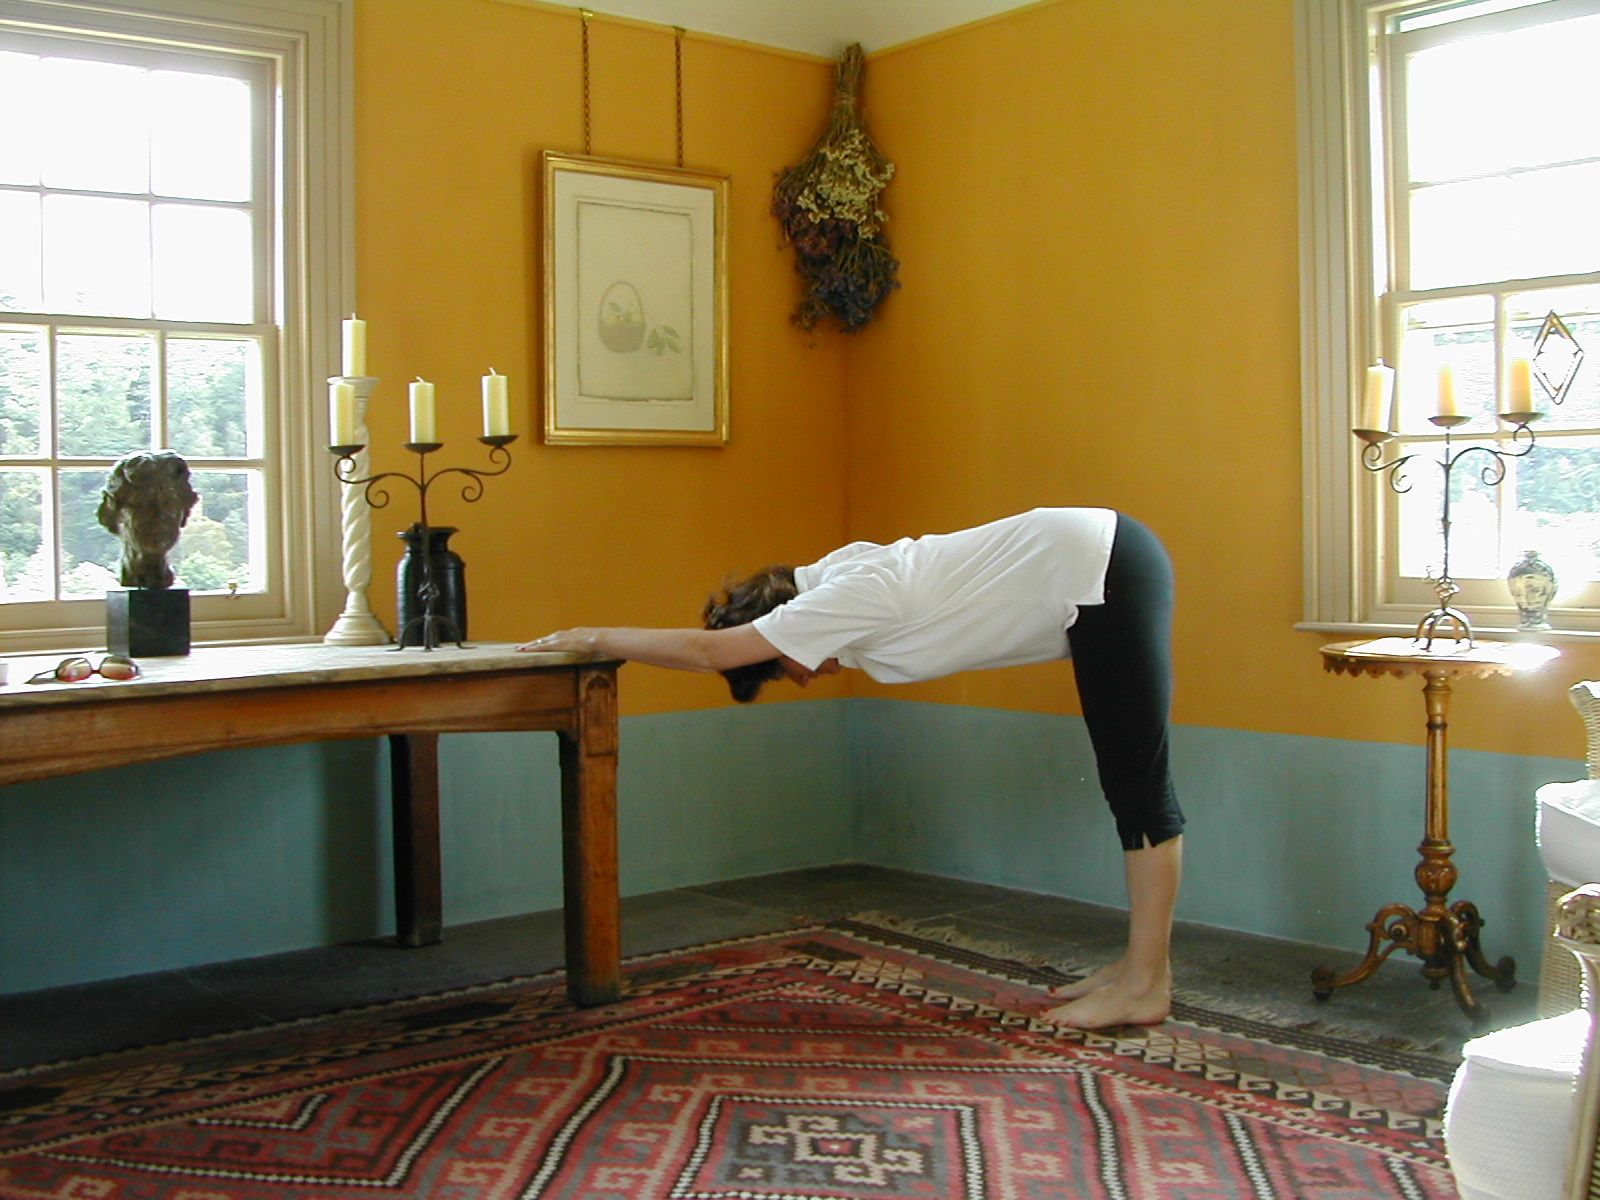 The Best Yoga For Lower Back Pain